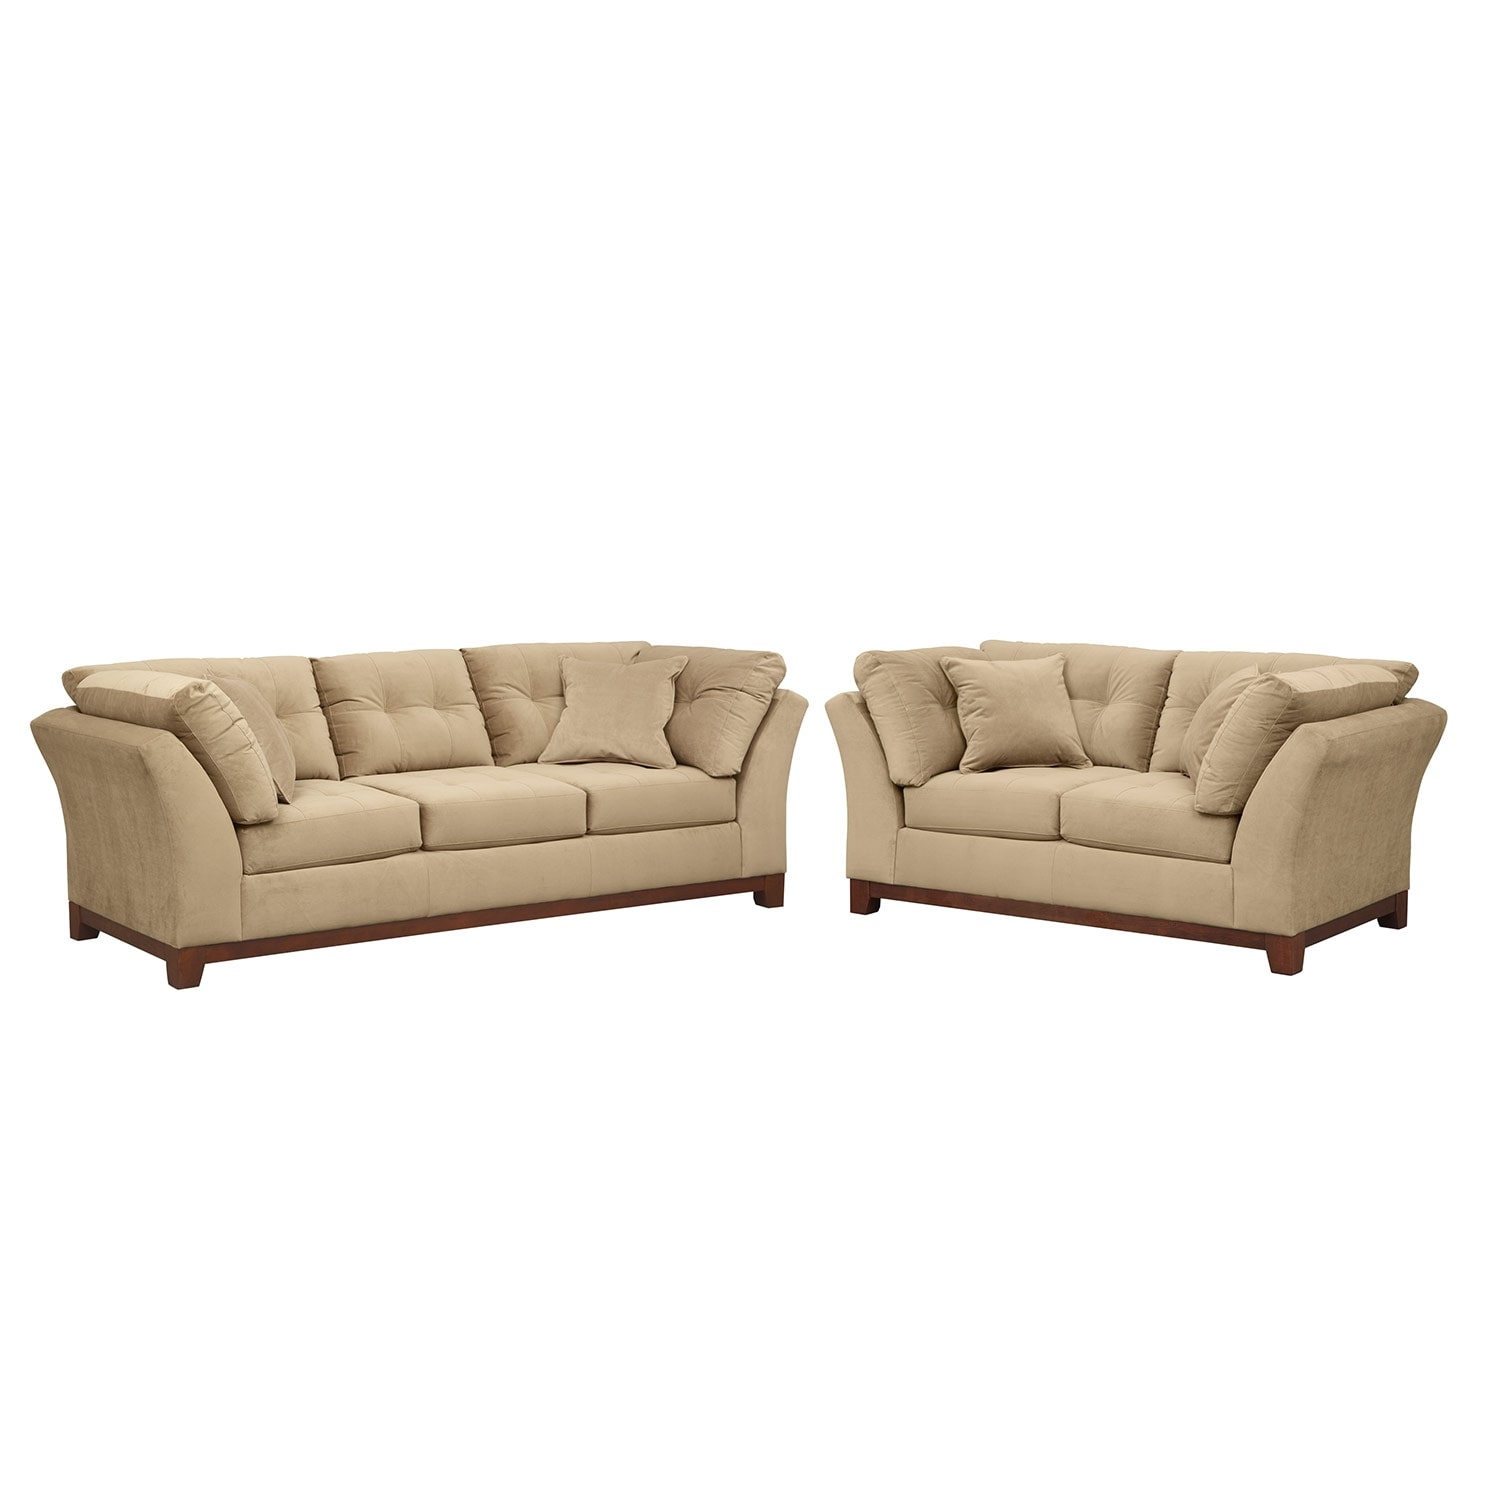 Living Room Furniture - Solace Cocoa 2 Pc. Living Room